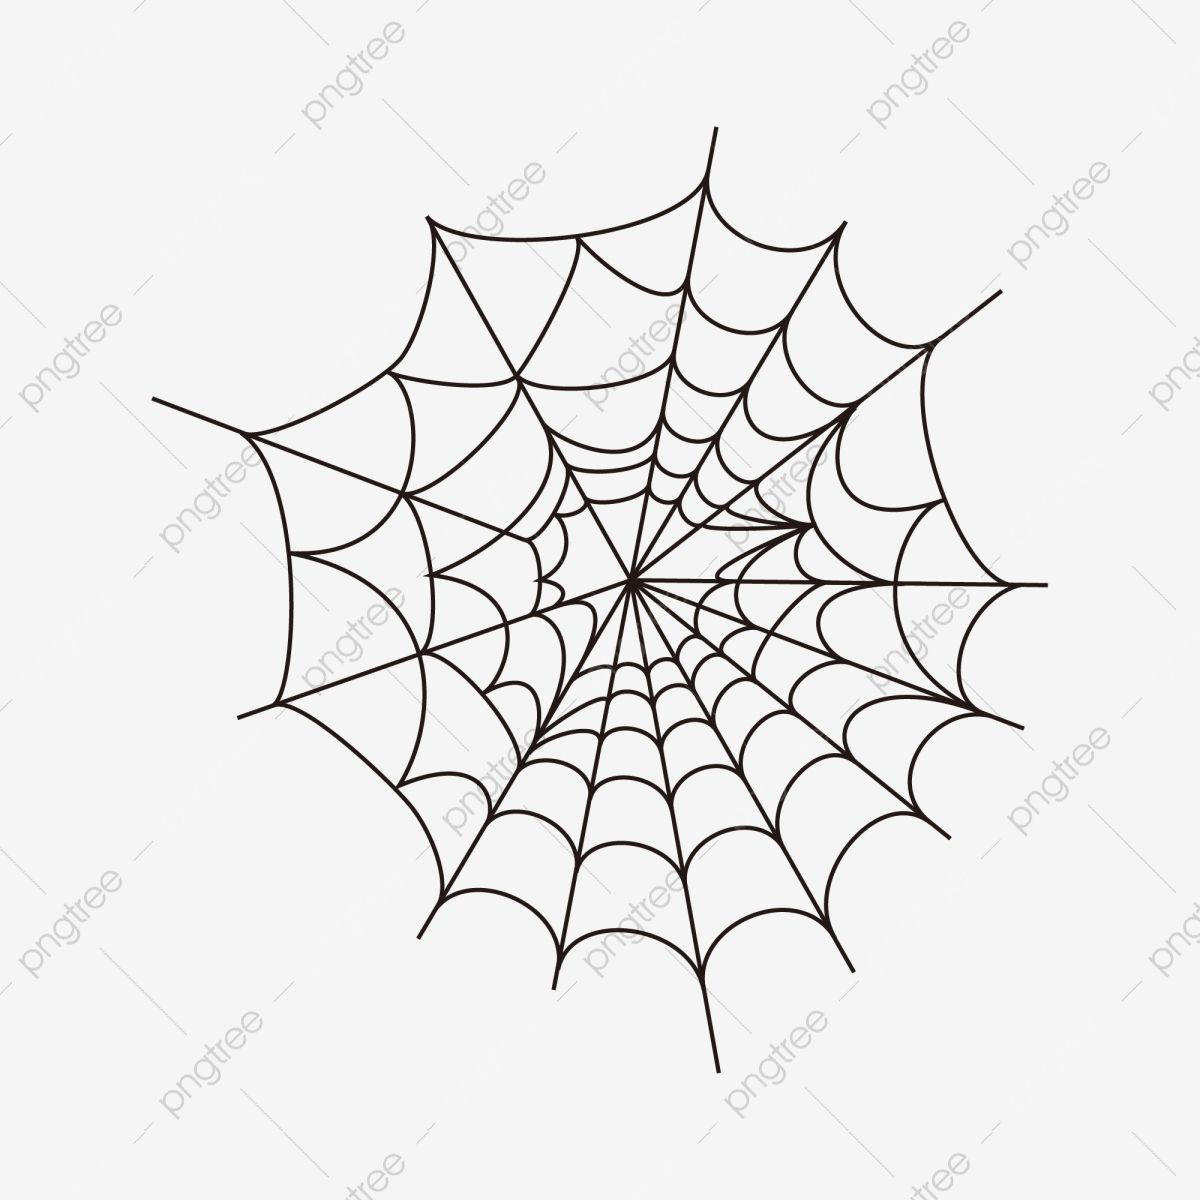 Creative Cartoon Spider Web Spider Web Icon Cartoon Clipart Spider Clipart Cobwebs Vector Png And Vector With Transparent Background For Free Download Cartoon Clip Art Spider Clipart Web Icons